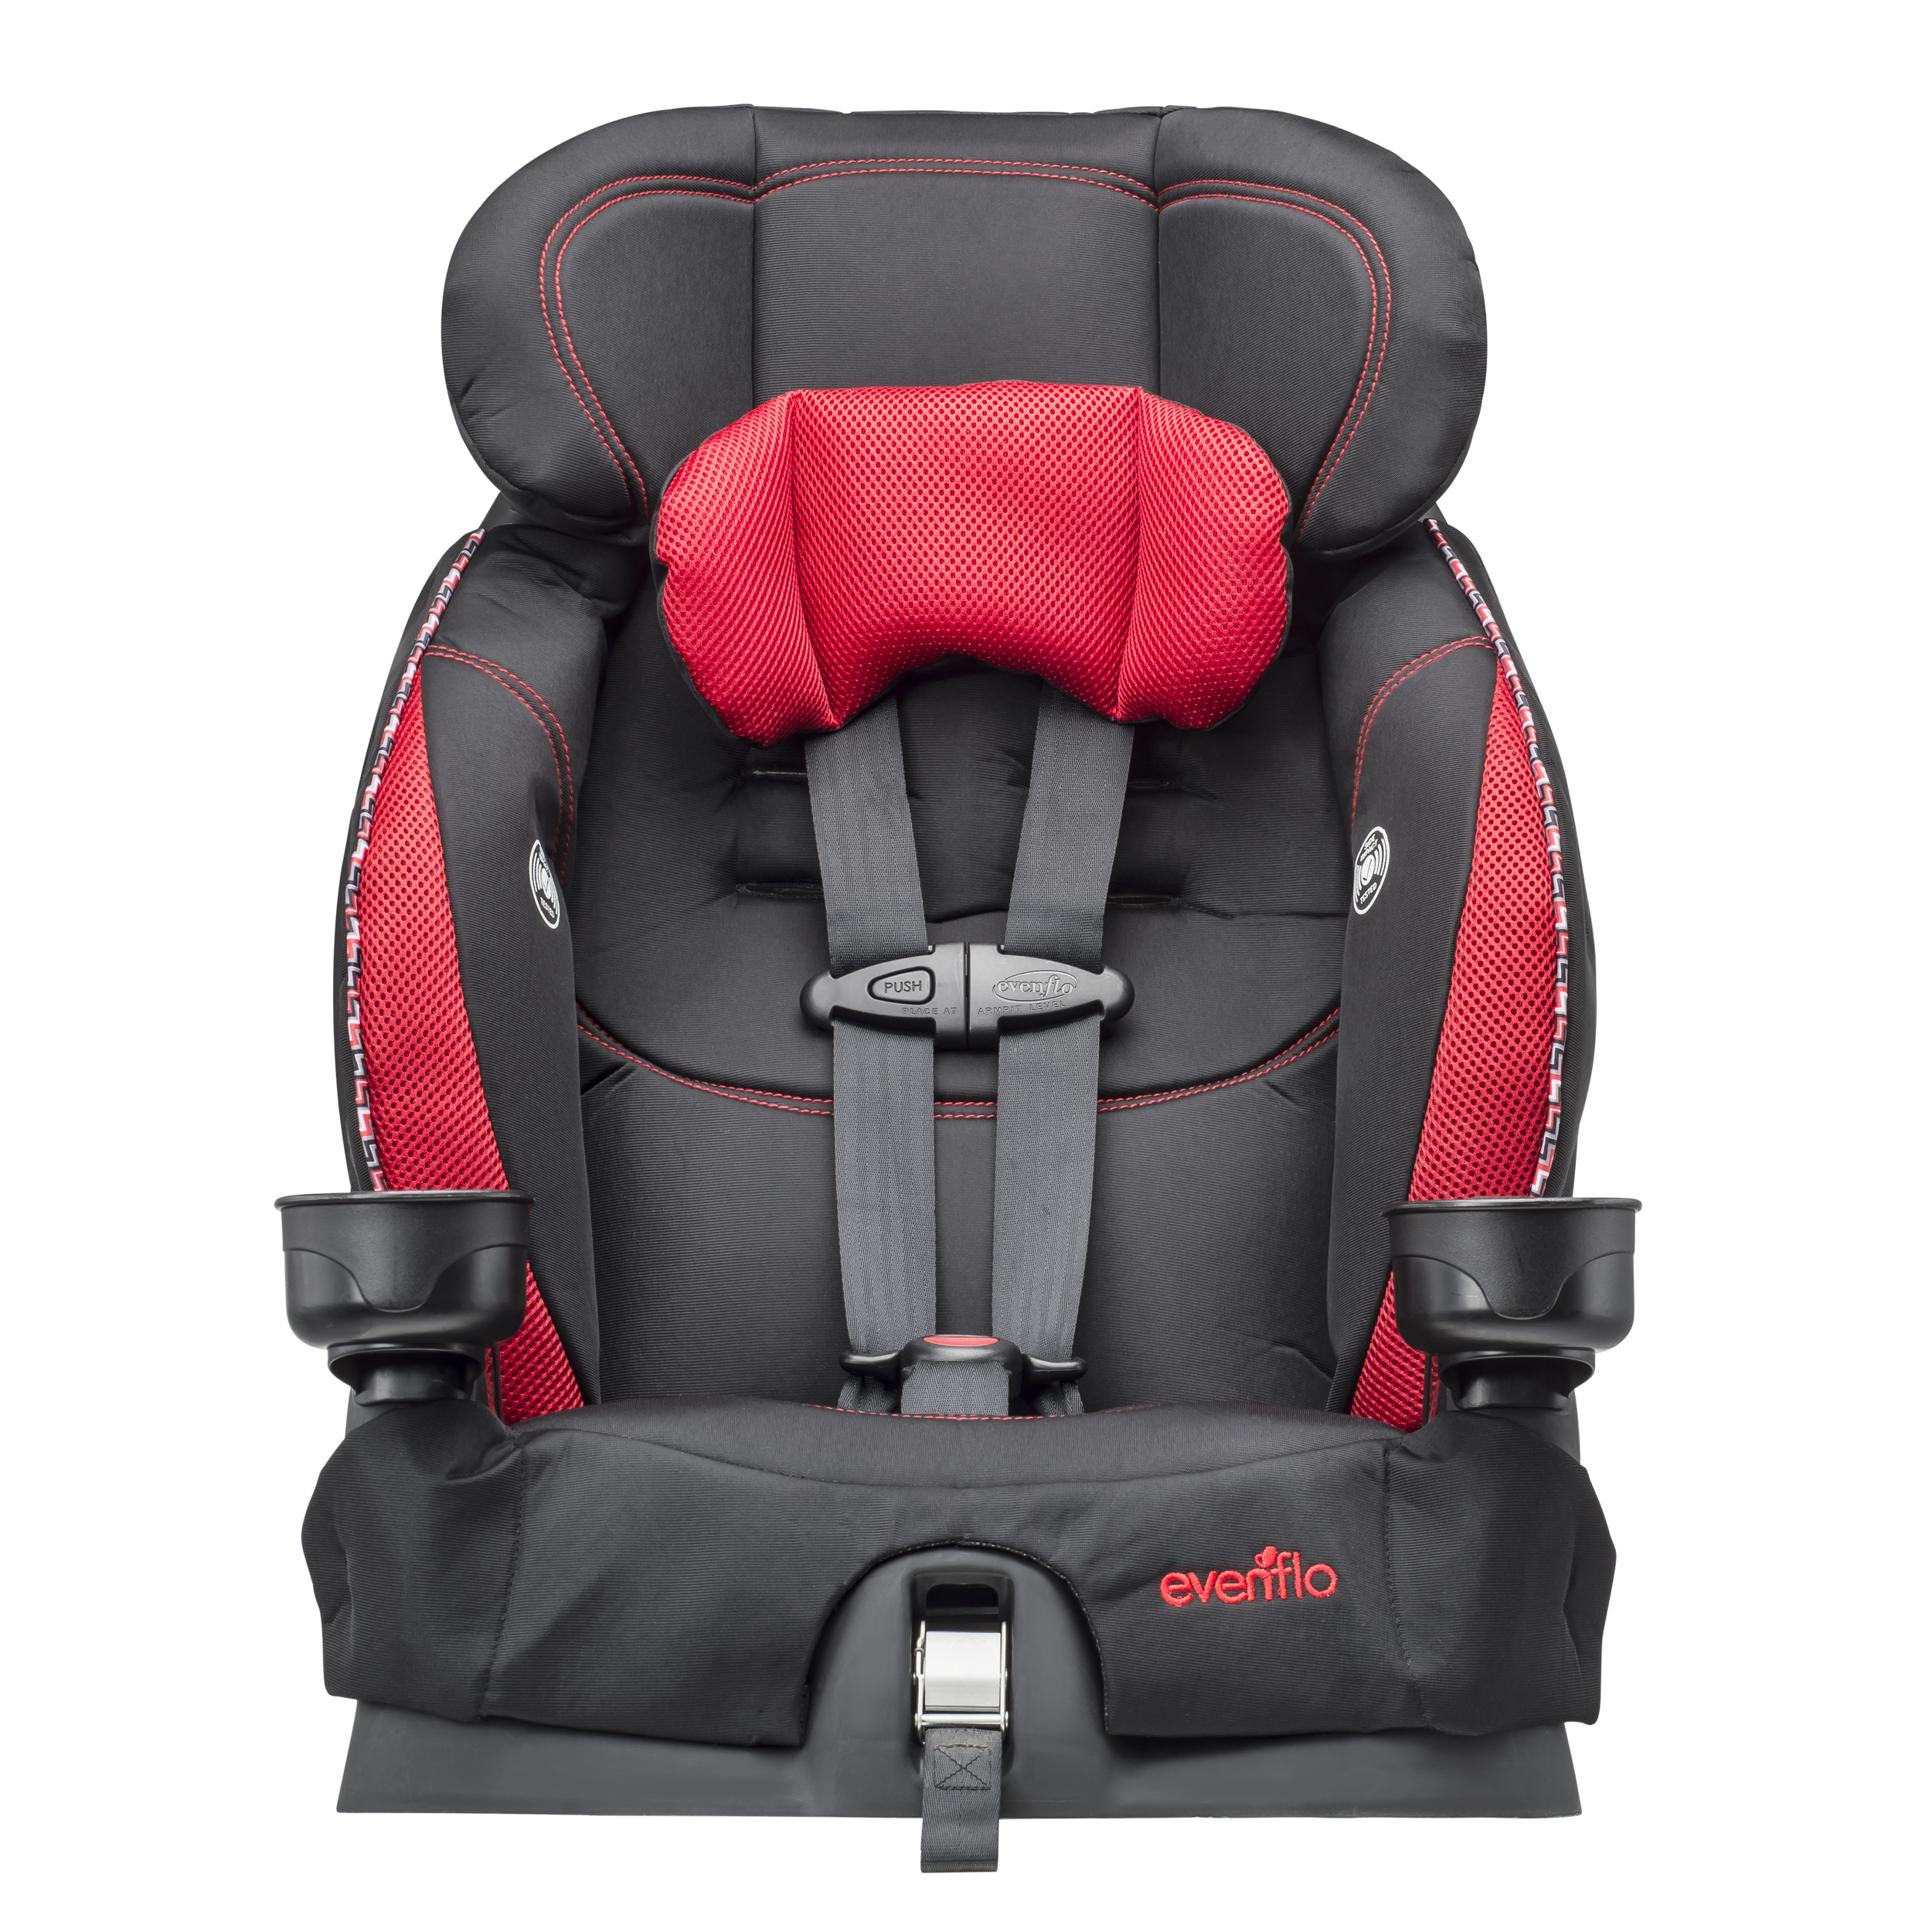 Evenflo Advanced Chase LX Harness Booster Car Seat, Twist